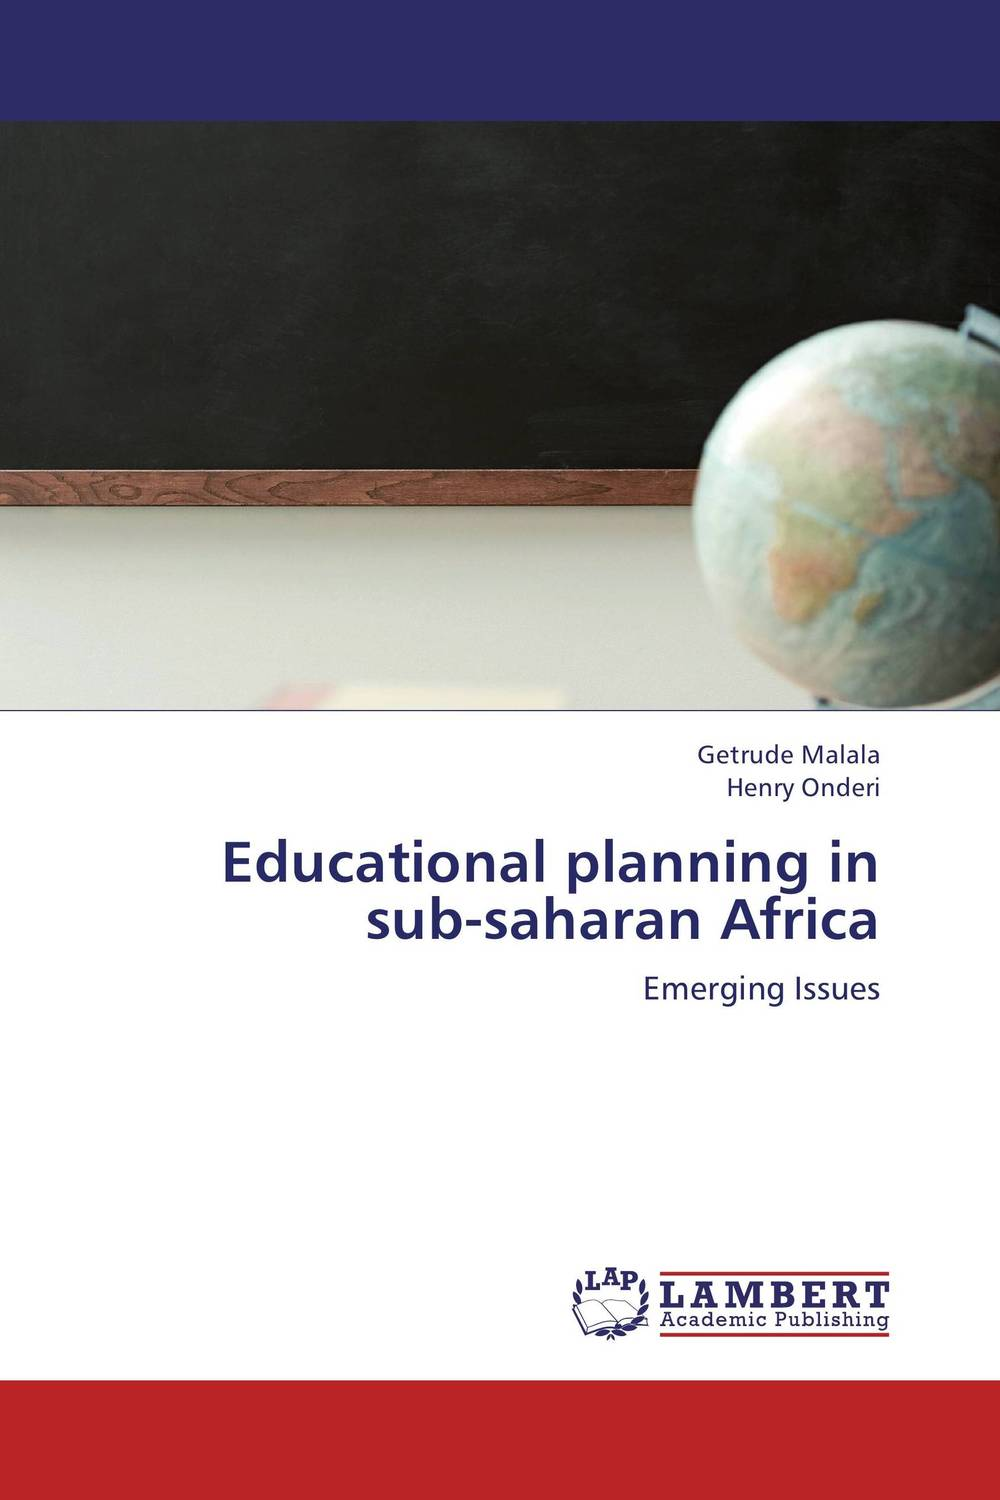 Educational planning in sub-saharan Africa